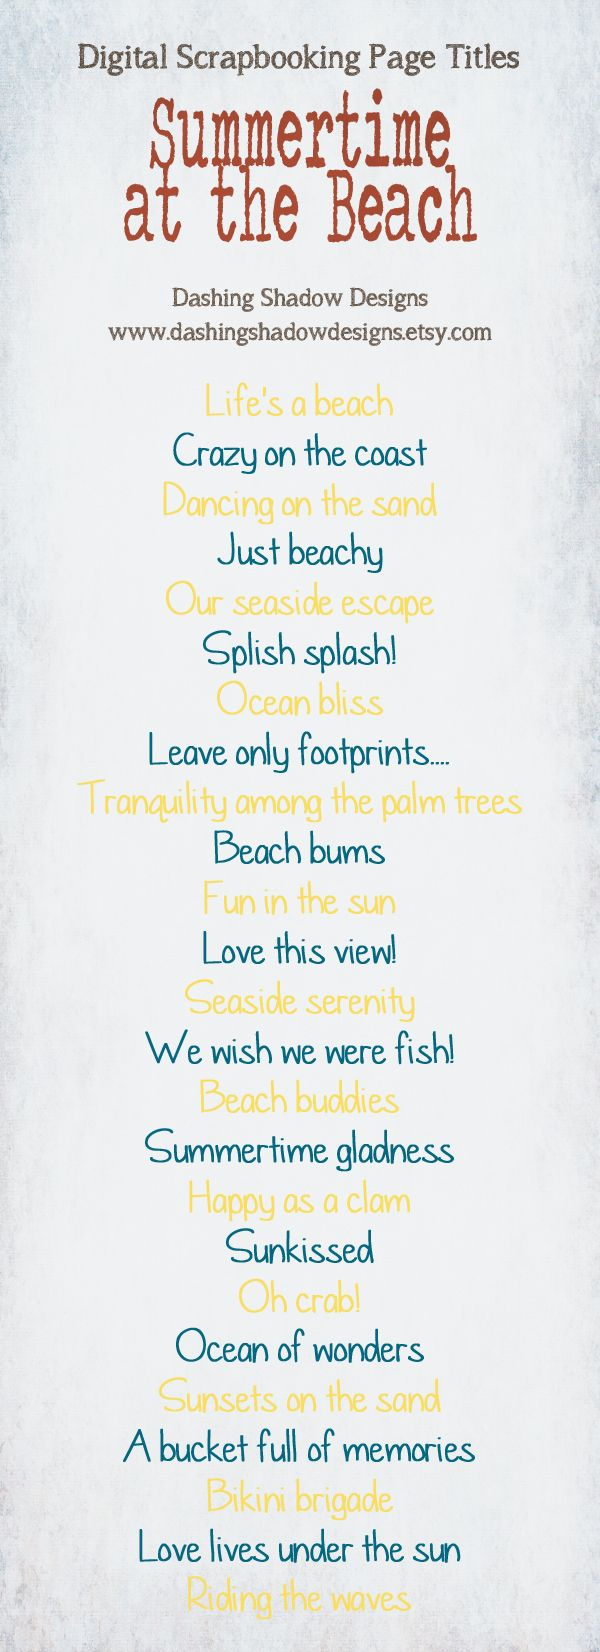 Scrapbook Page Title Ideas - Summertime at the Beach #digital #scrapbook #scrapbooking #title #titles #ideas #digiscrap #summer #beach #ocean #sea